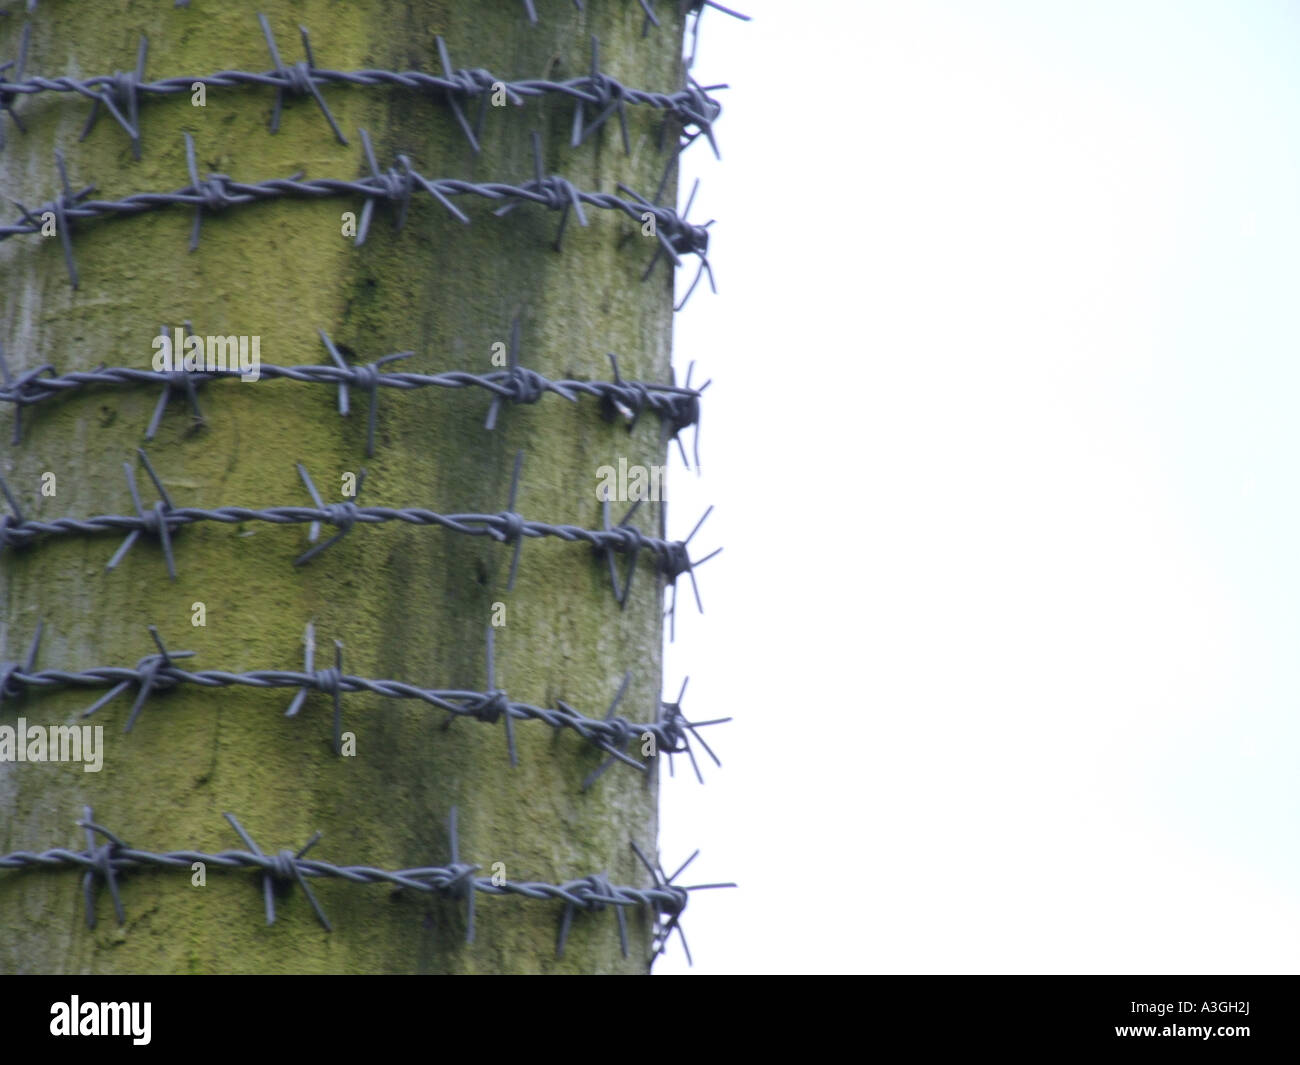 Barbed Wire Wound - Dolgular.com